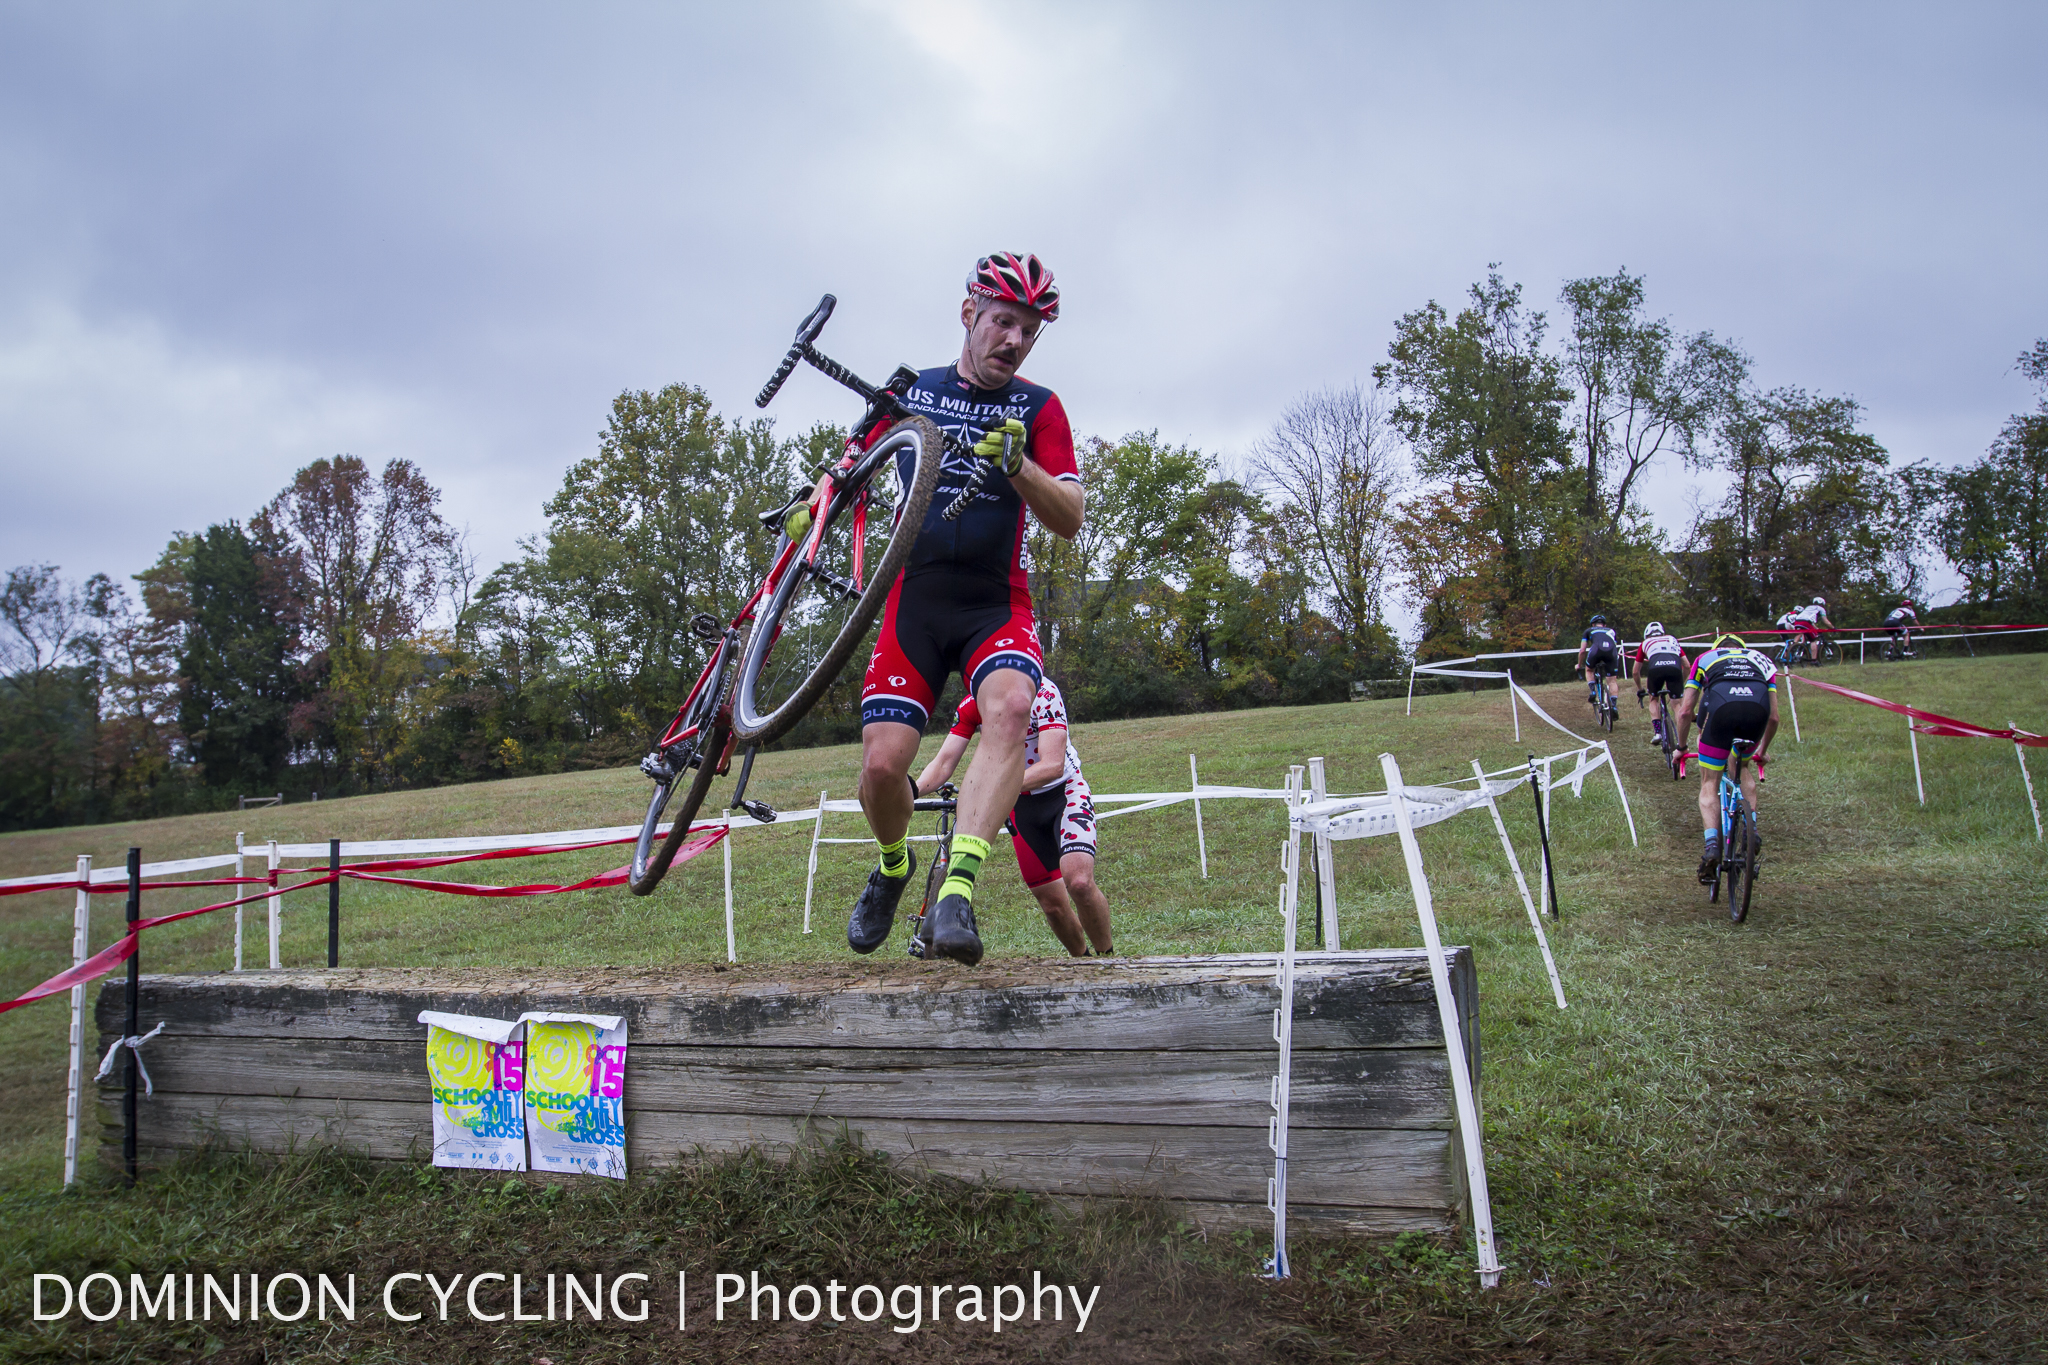 Falkorburg CX - Presented by Baltimore Bike Club Race TeamOctober 27, 2019